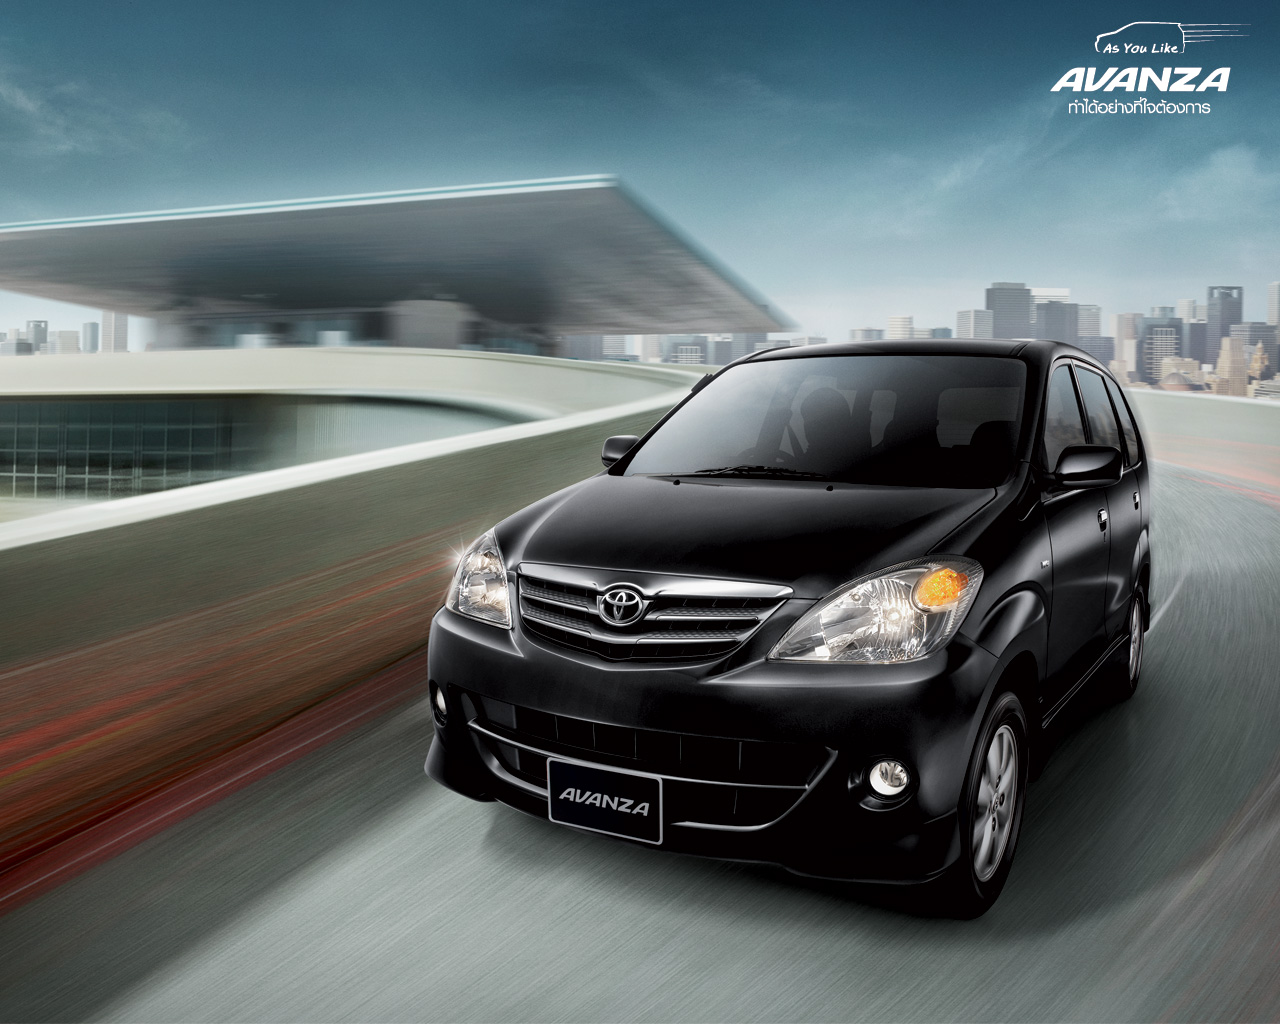 Online Business Buy a Car Avanza AGUNG AUTOmall Sekupang The place